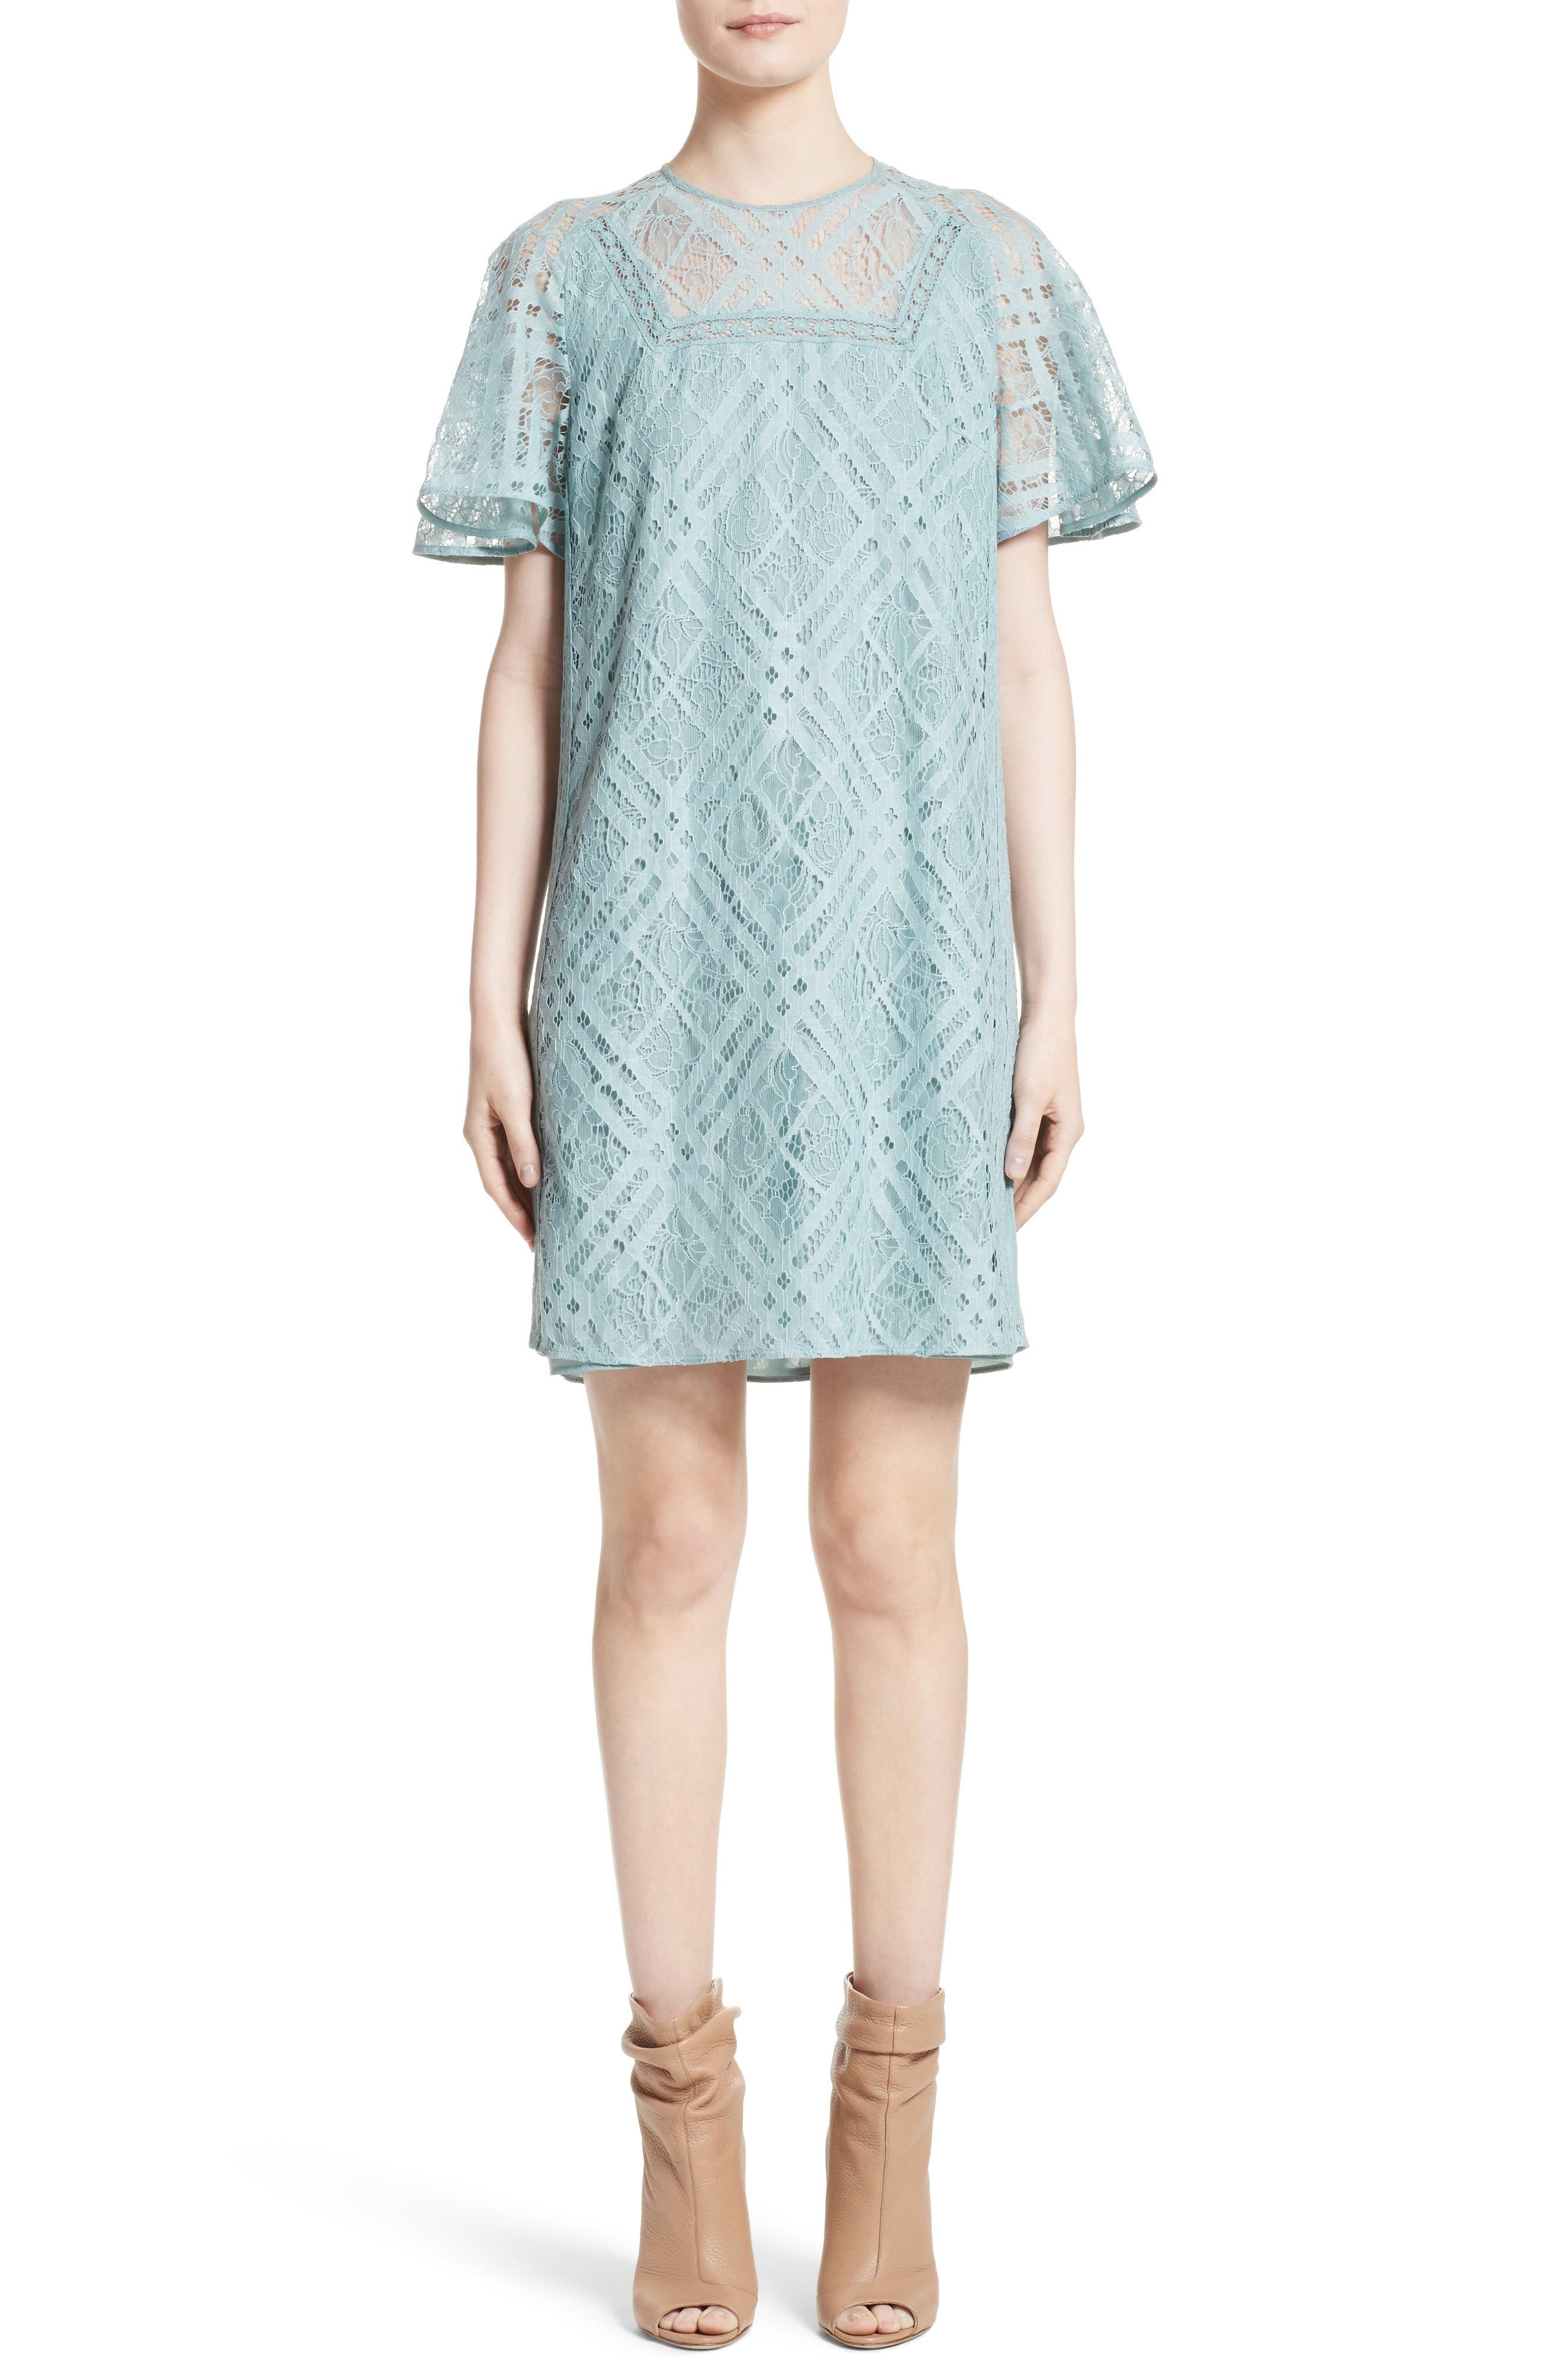 Burberry Keri Floral Check Lace Dress